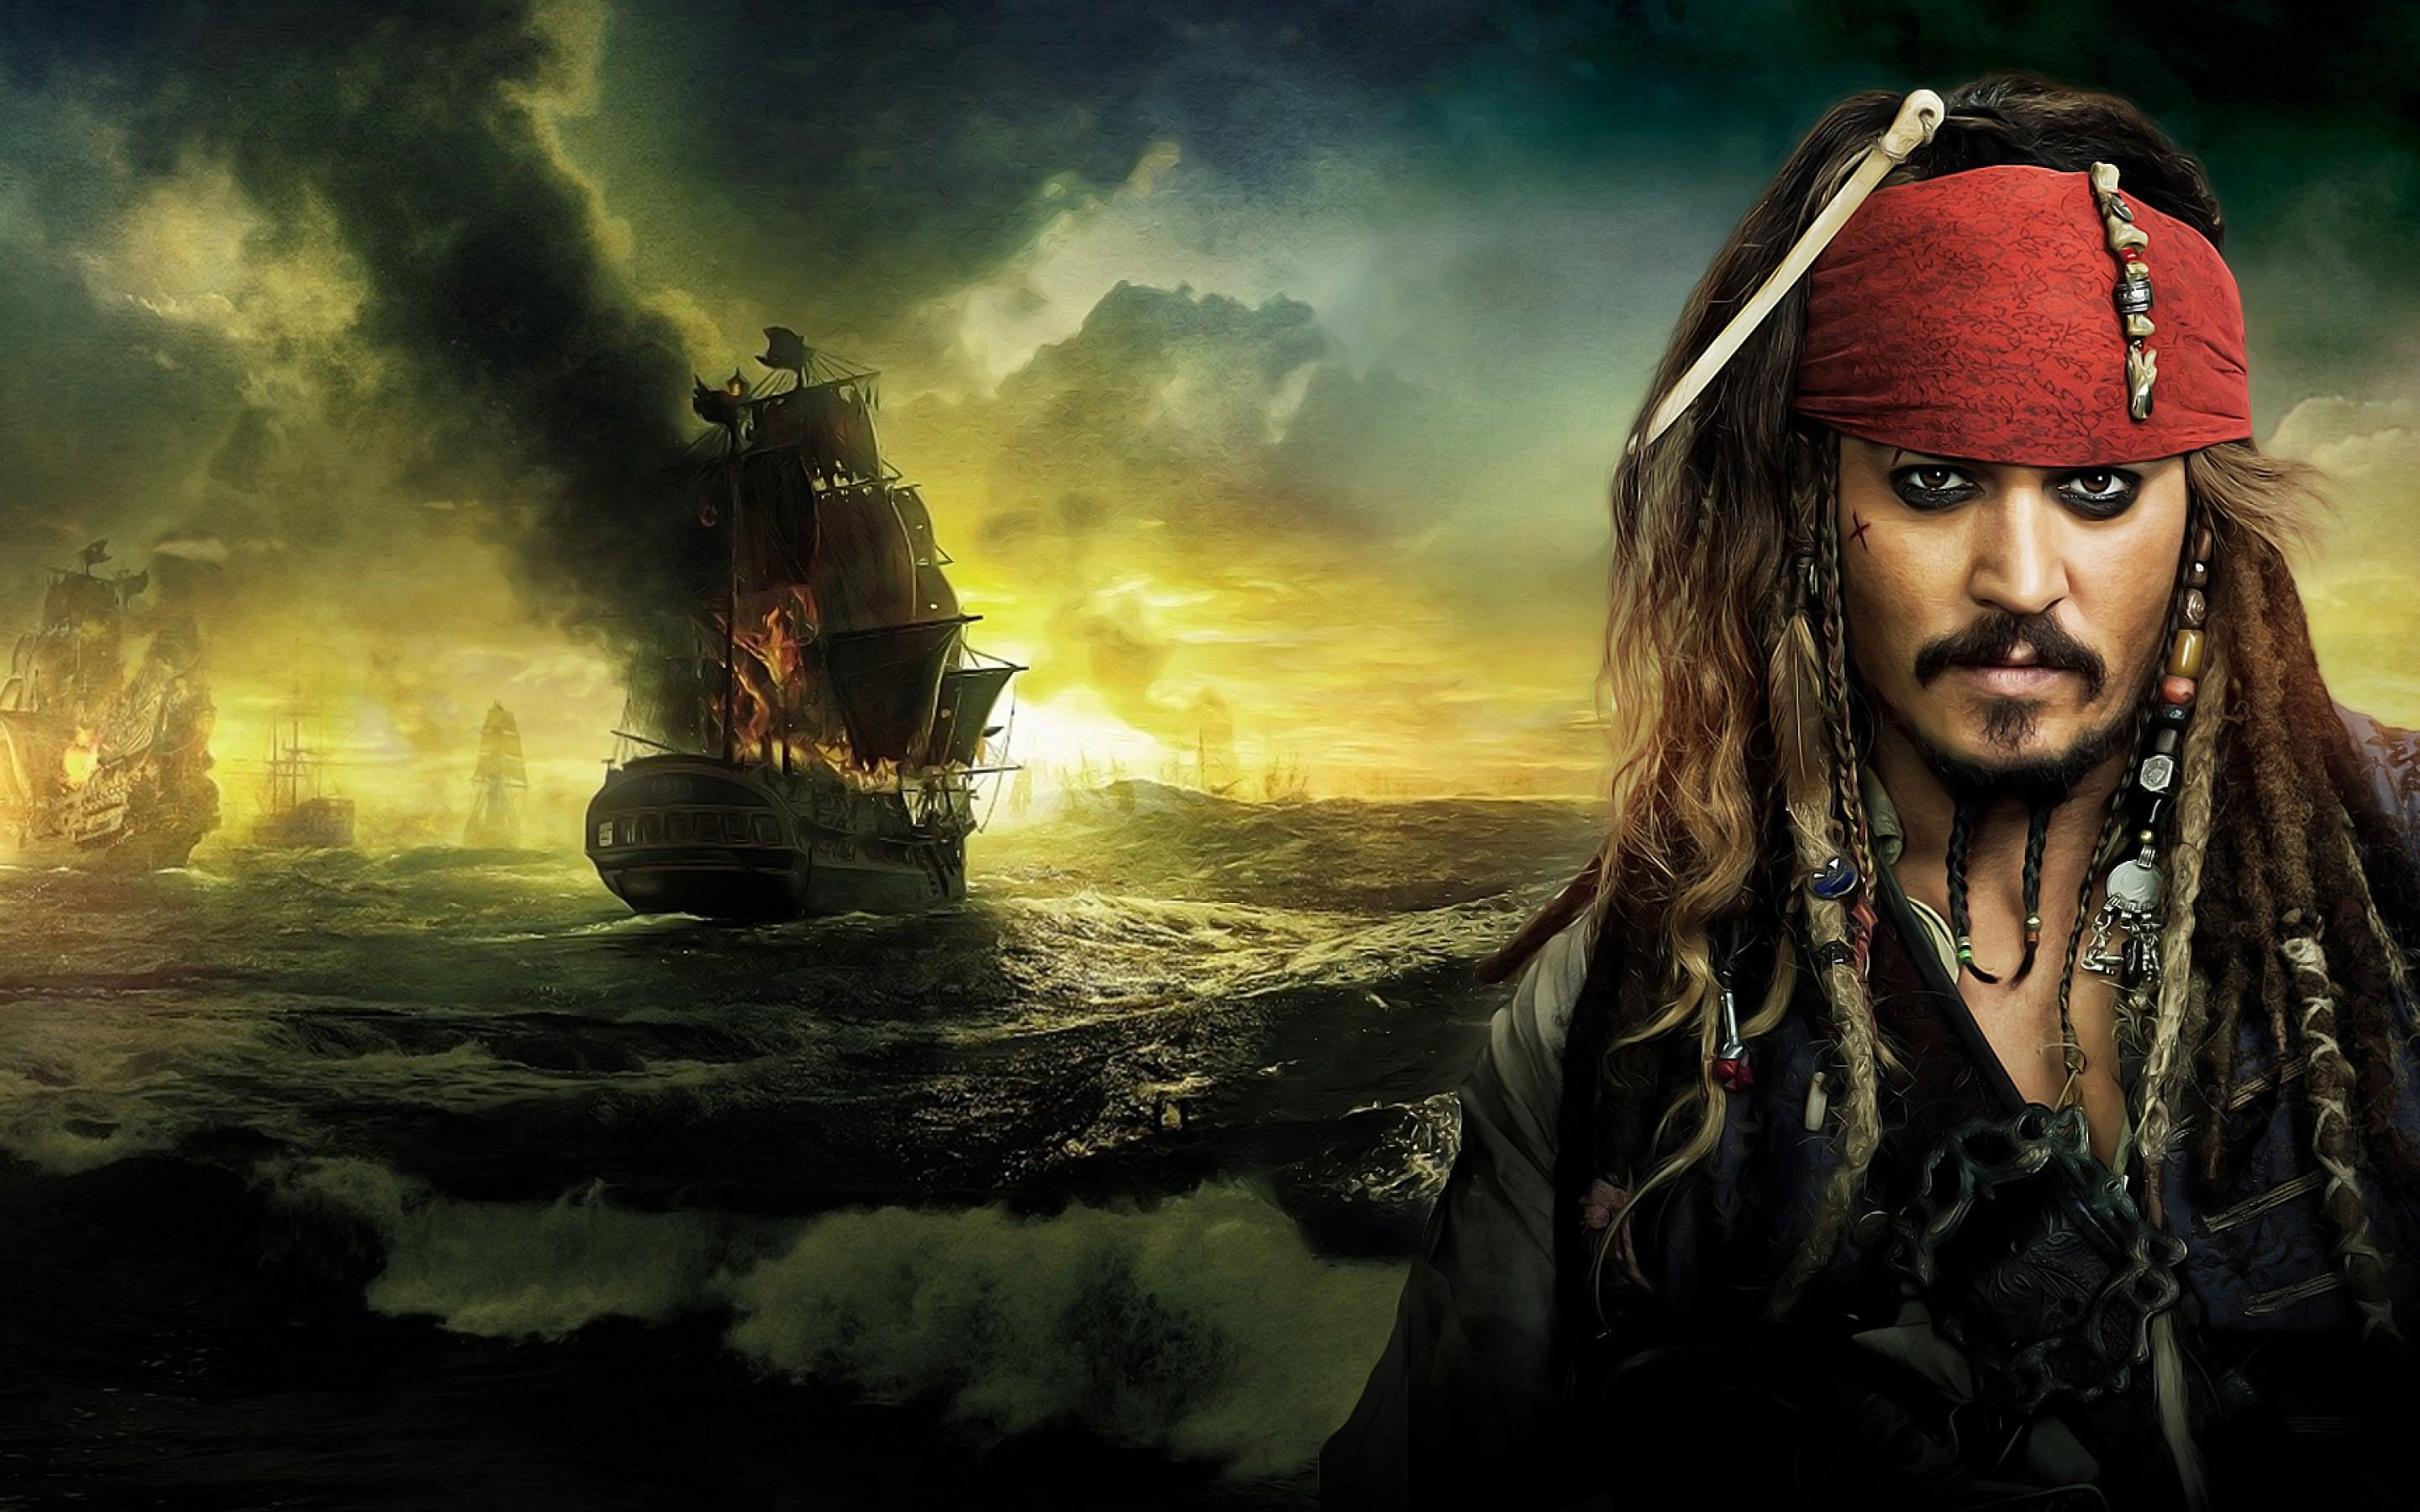 Jack Sparrow - Pirates Of The Caribbean Wallpaper for Desktop 2880x1800